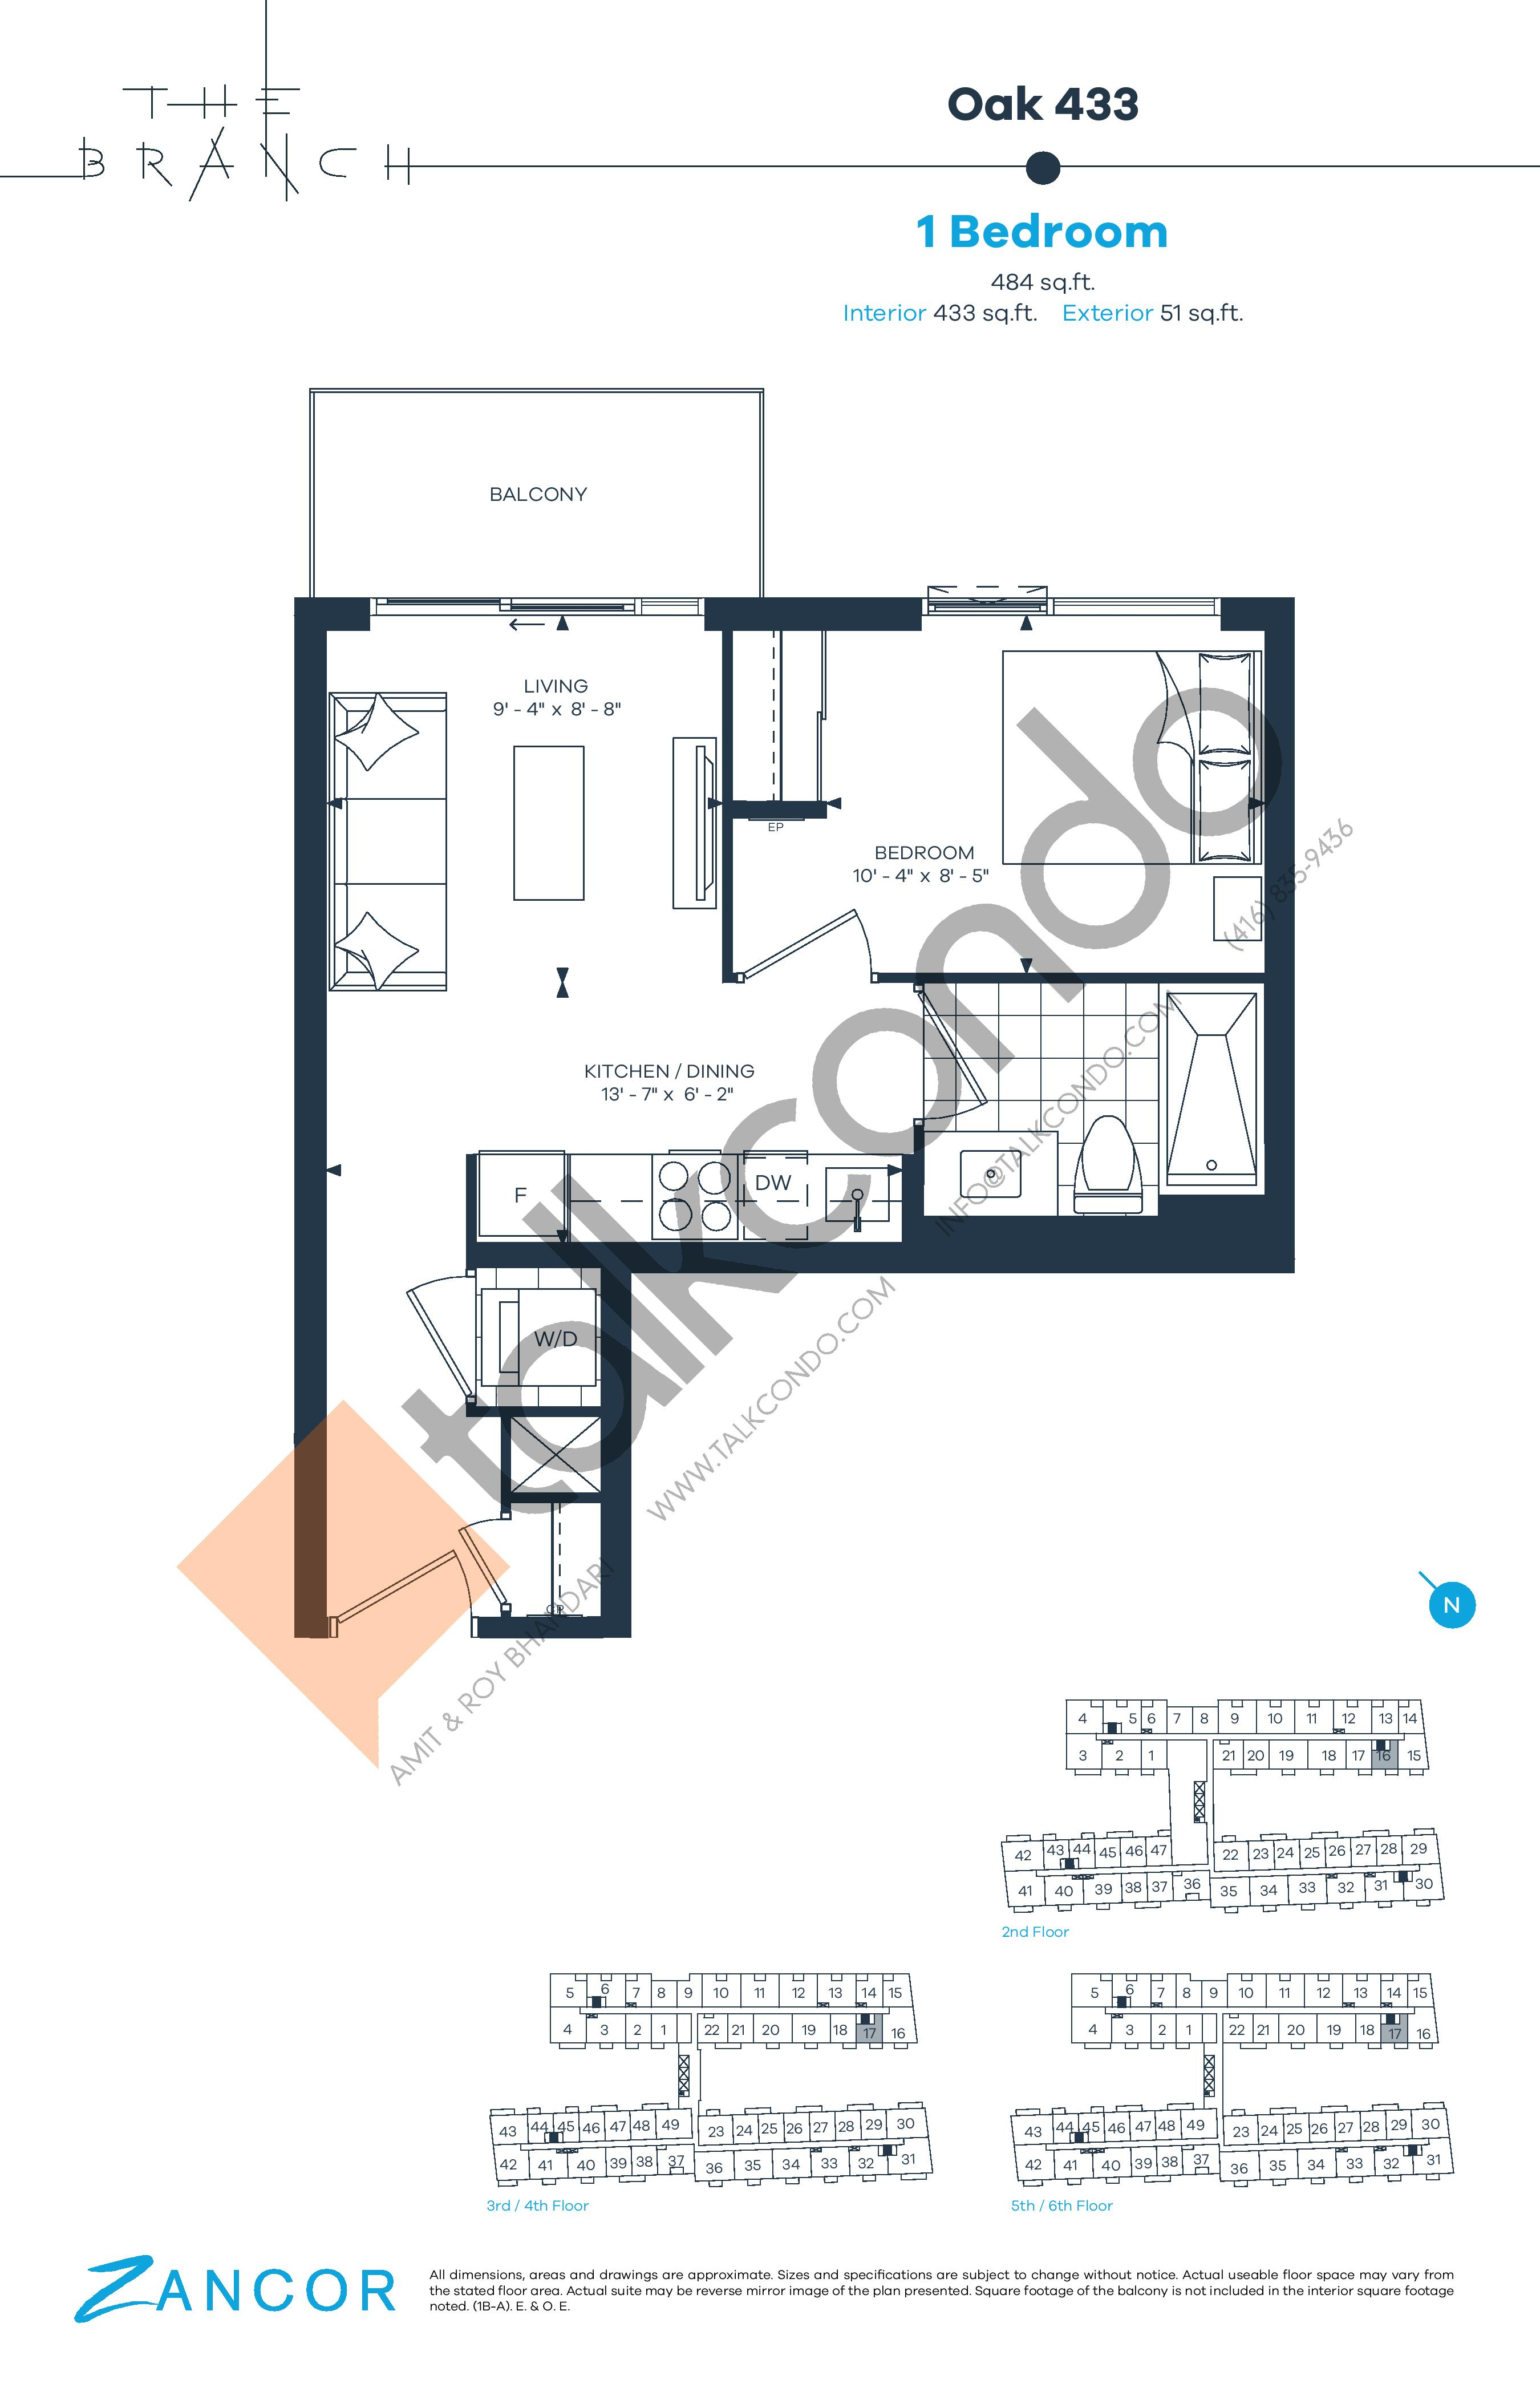 Oak 433 Floor Plan at The Branch Condos - 433 sq.ft